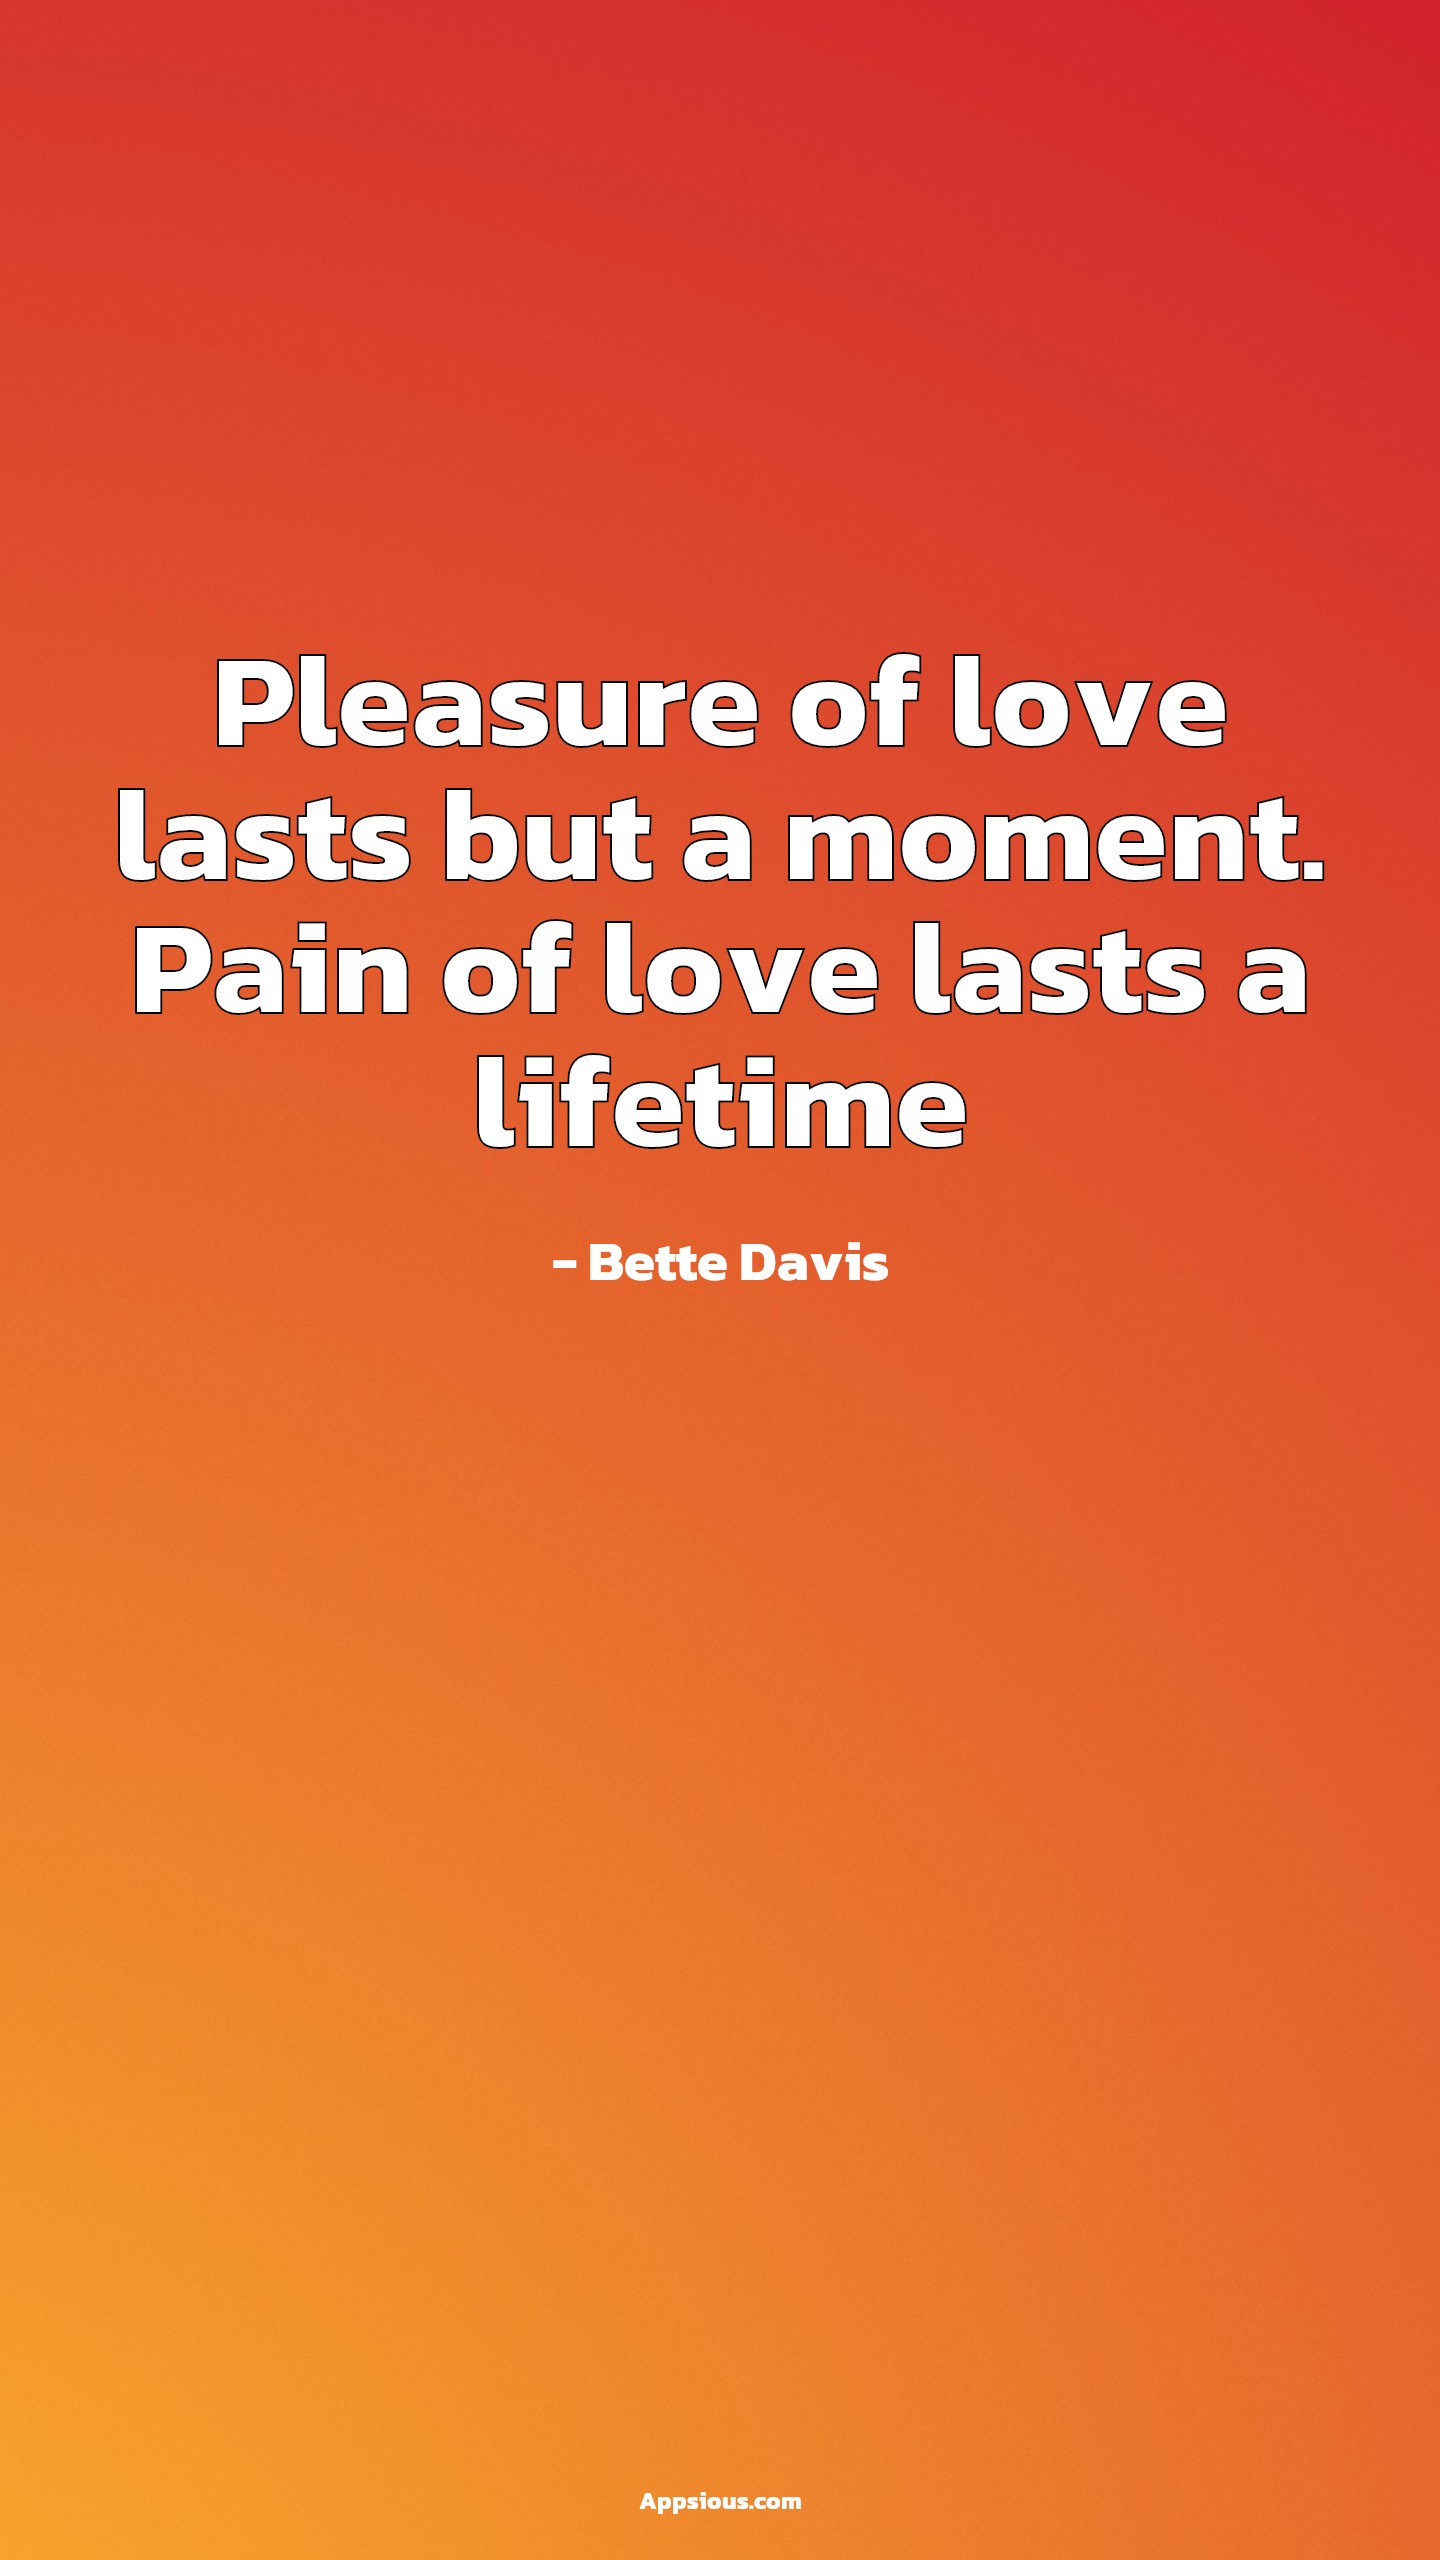 Pleasure of love lasts but a moment. Pain of love lasts a lifetime